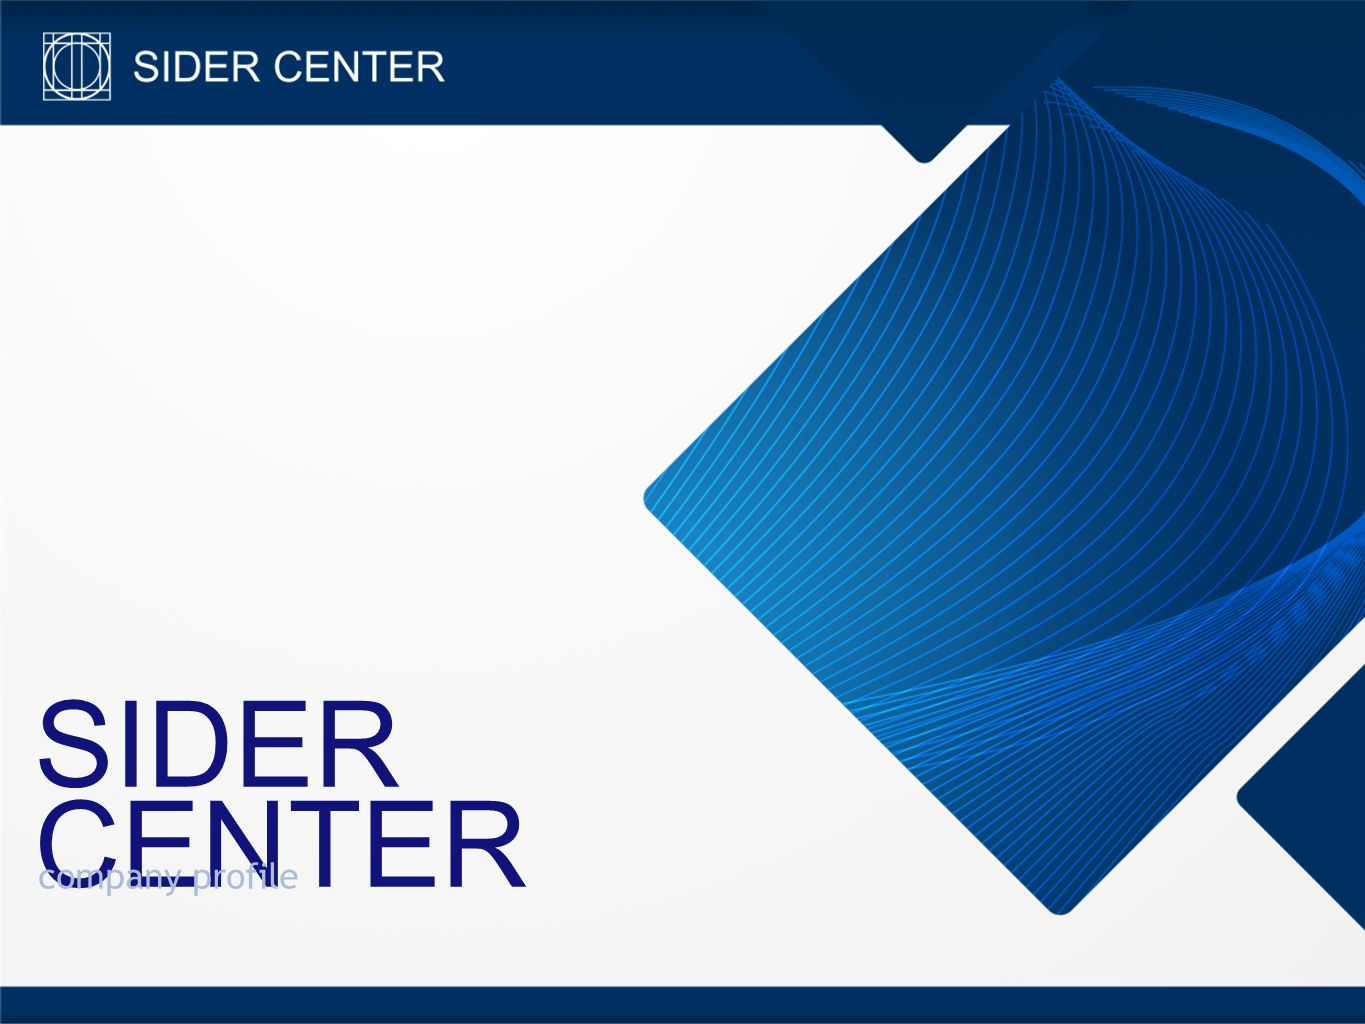 SIDER CENTER company profile